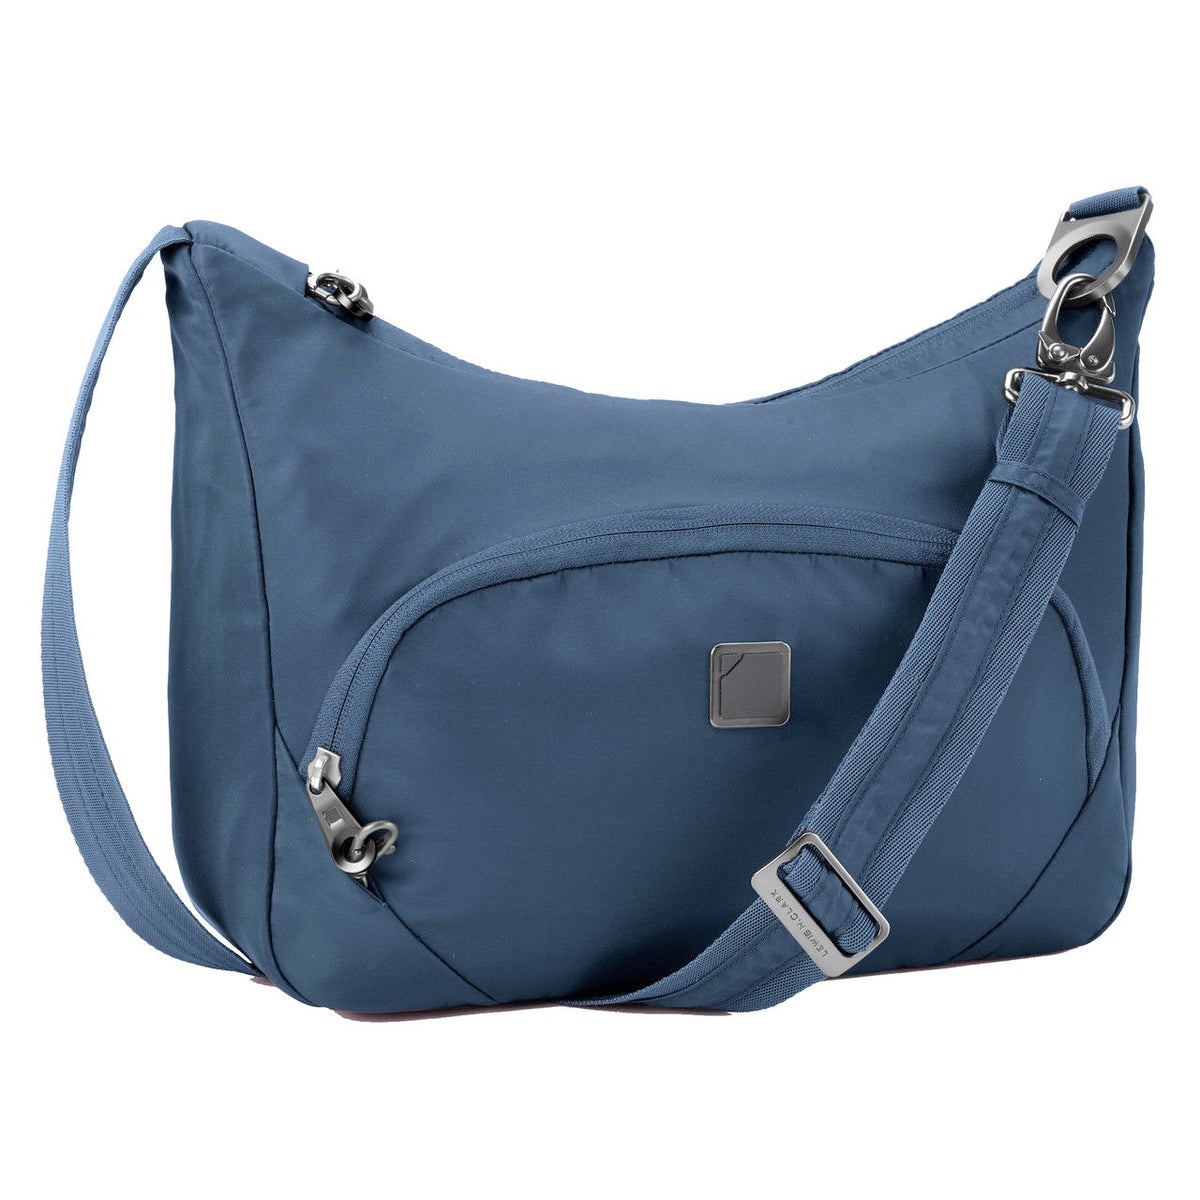 Handbags, Shoulder Bags